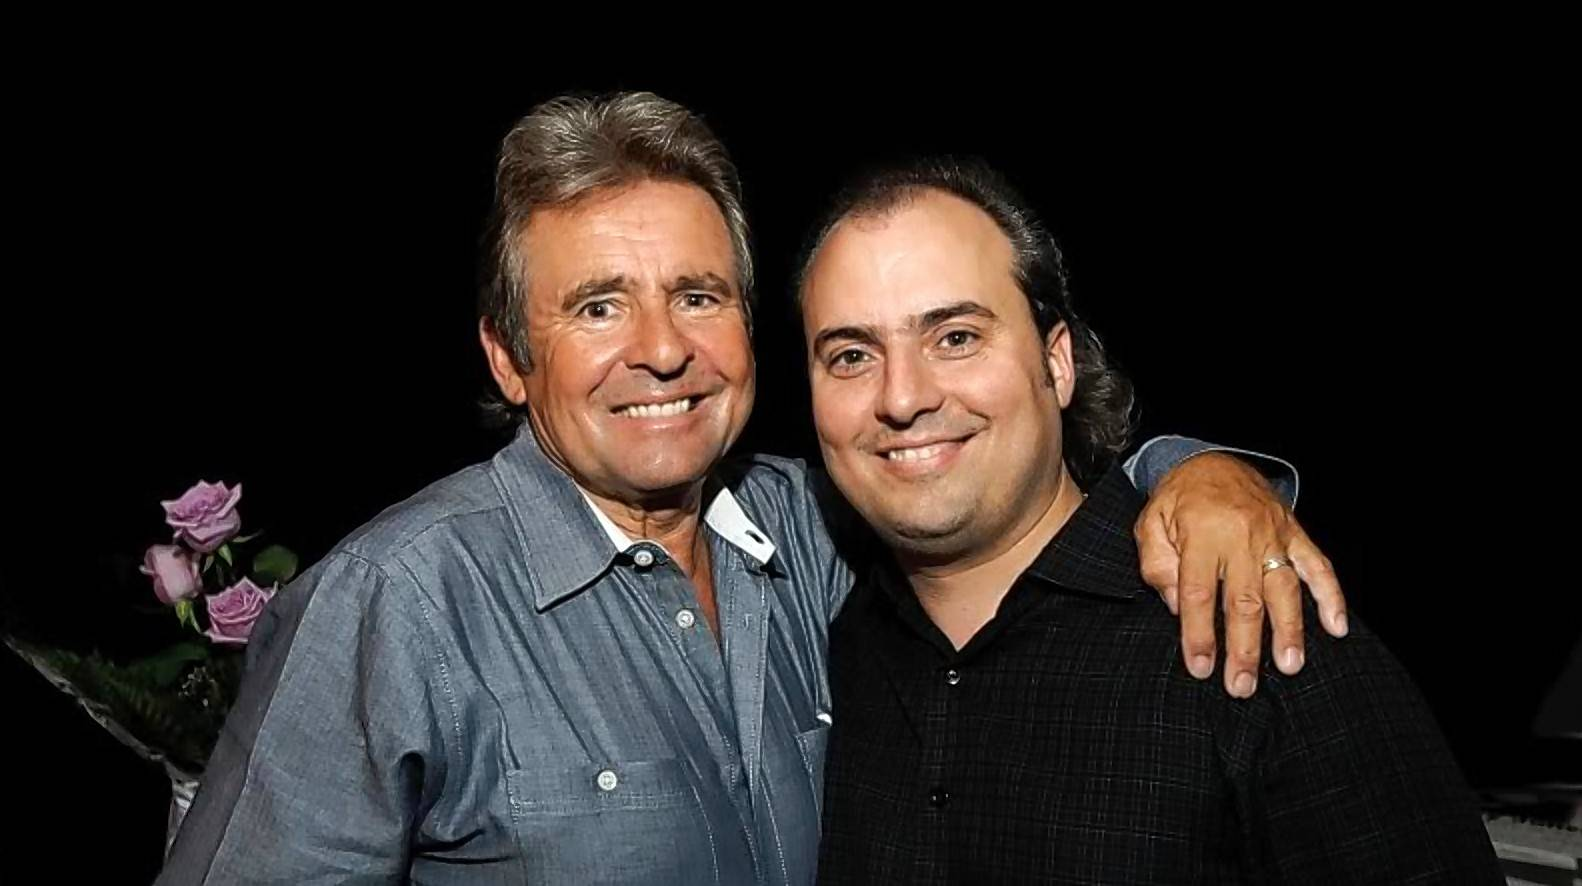 Davy Jones of the Monkees, left, is just one of the many stars with whom concert promoter Ron Onesti has worked, but have now passed away.